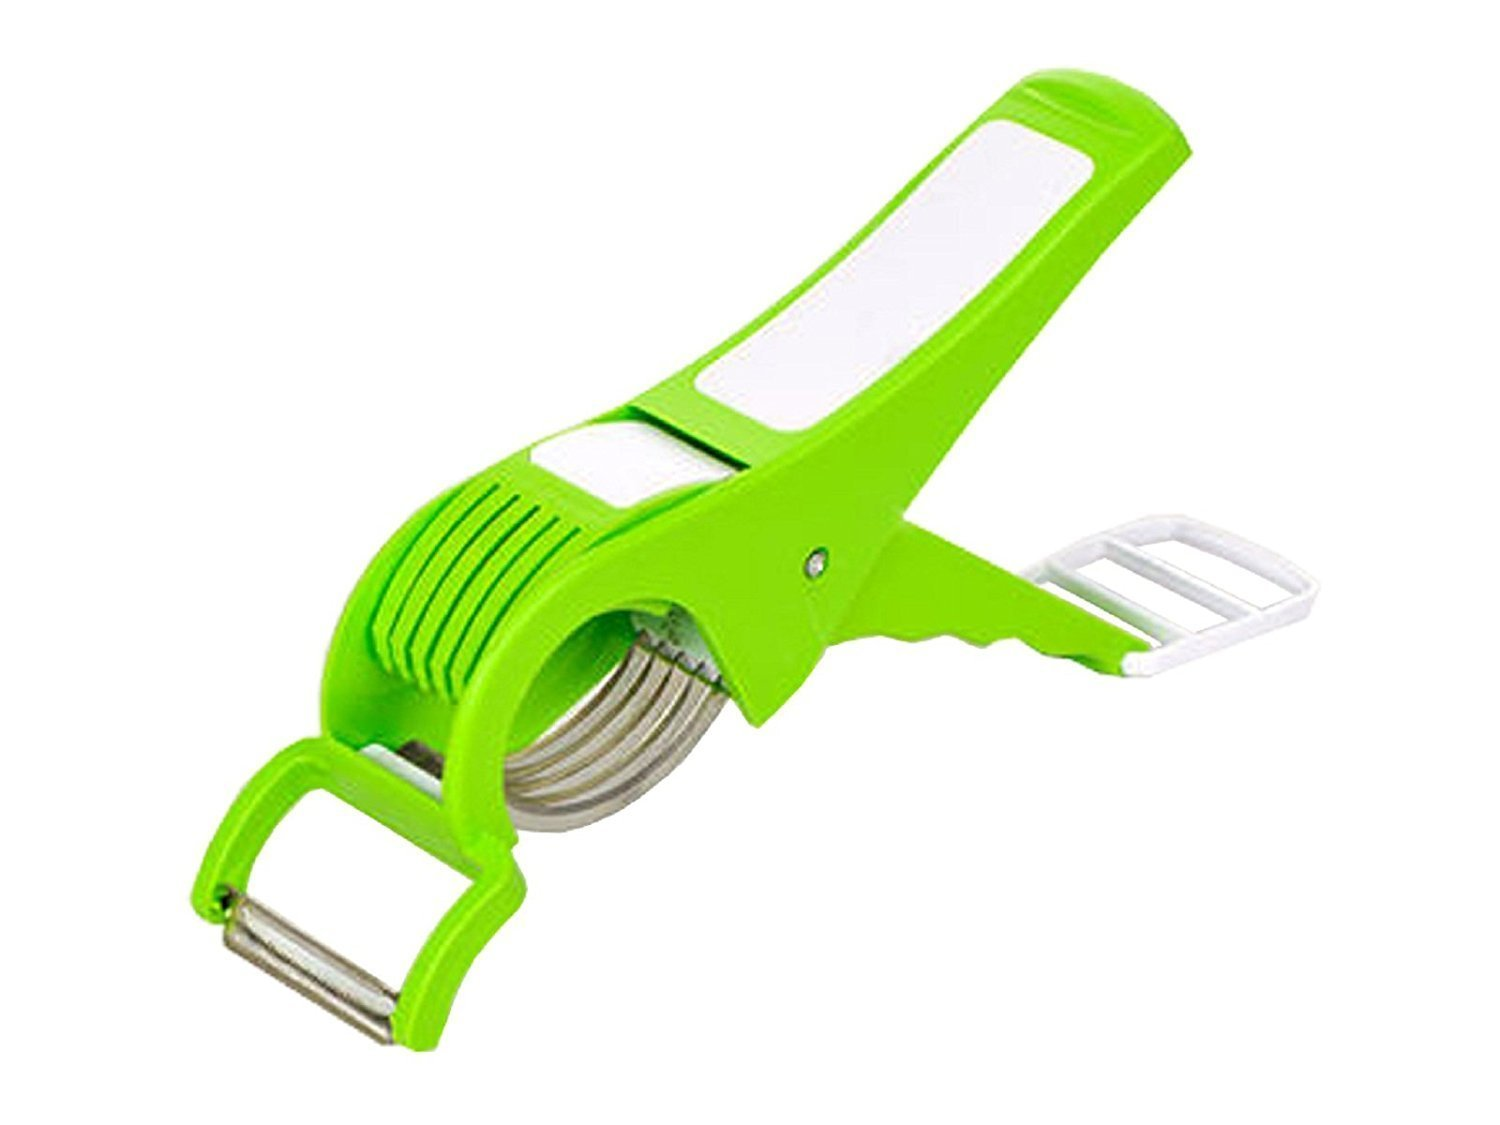 G&D Multi Cutter With Peeler For Vegetable And Fruit,Food Cutter,Carrot Cutter, Extra Sharp Stainless Steel,Vegetable slicer-Dicer cutter GD